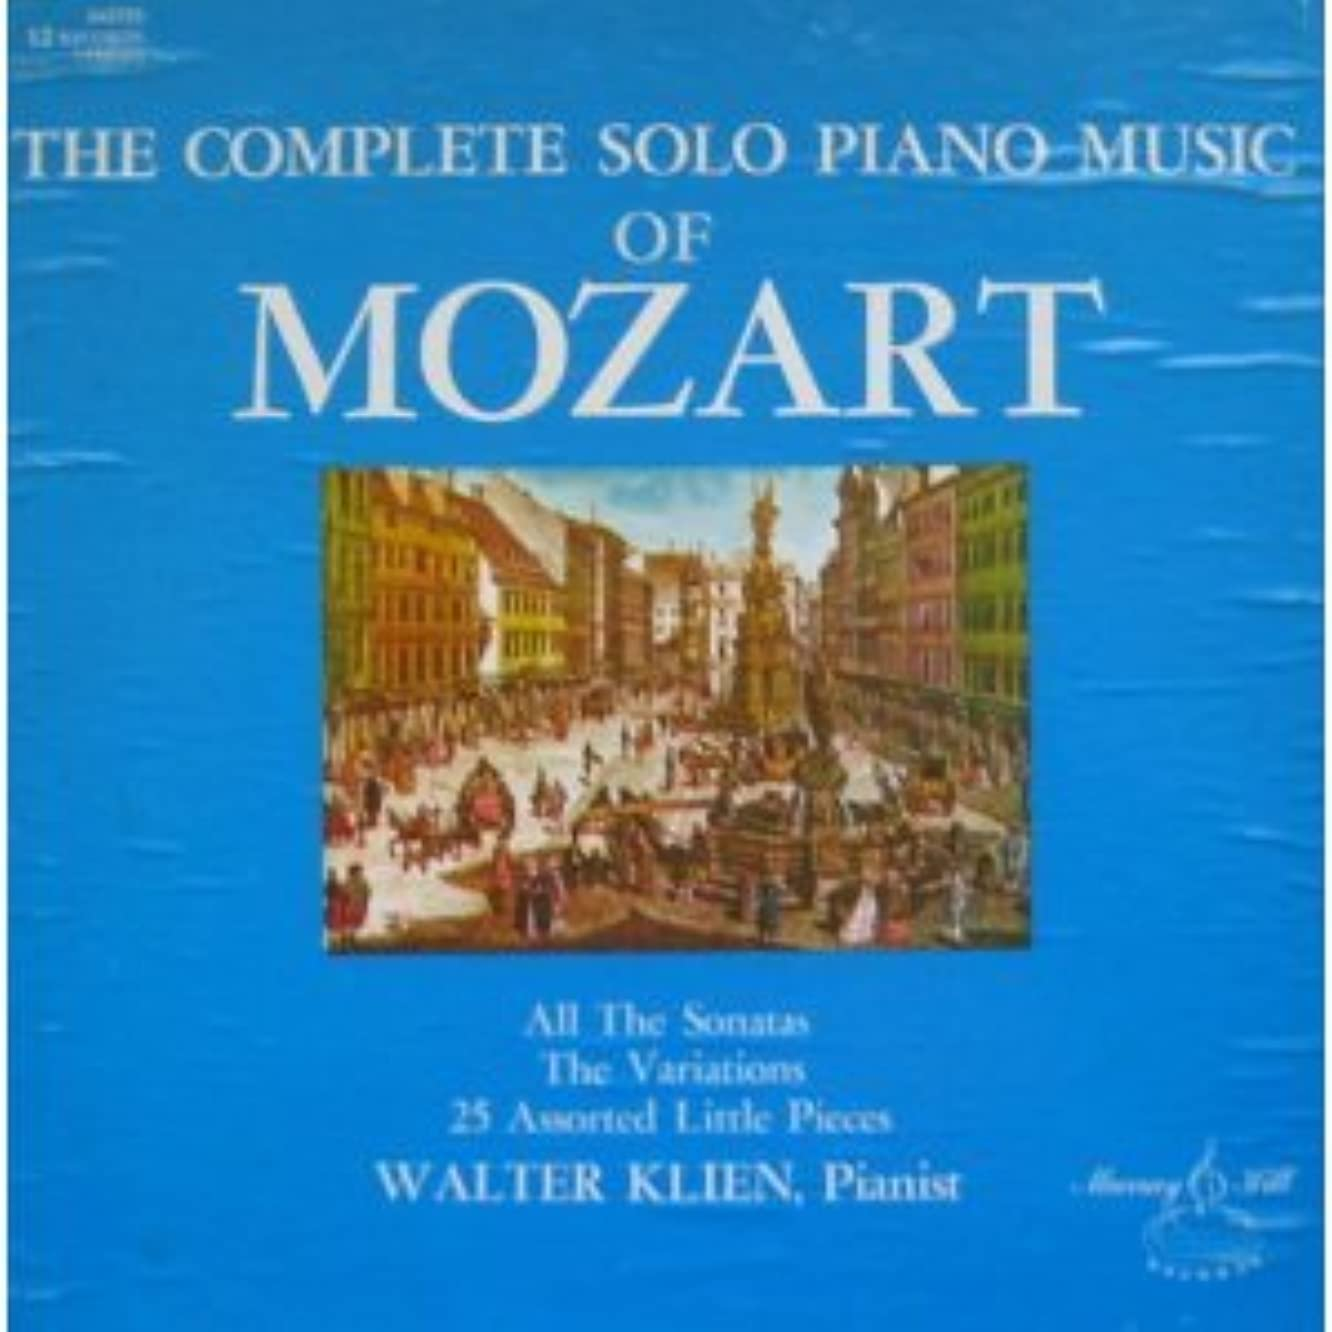 The Complete Solo Piano Music of MOZART - All the Sonatas - The Variations - 25 Assorted Little Pieces